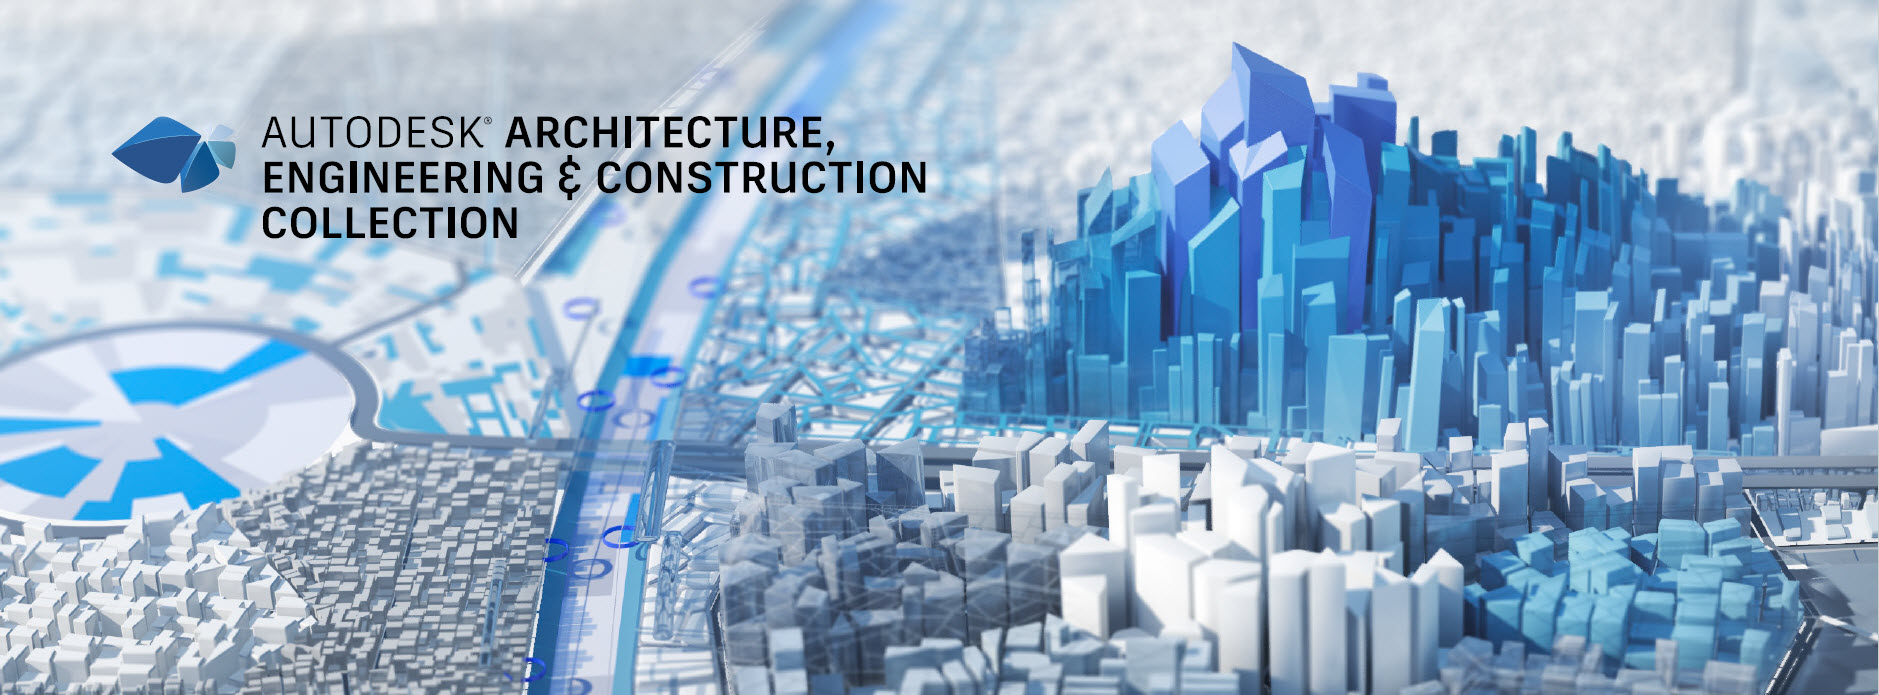 Exceptionnel Autodesk Architecture, Engineering And Construction Collection Autodesk  Architecture, Engineering And Construction Collection